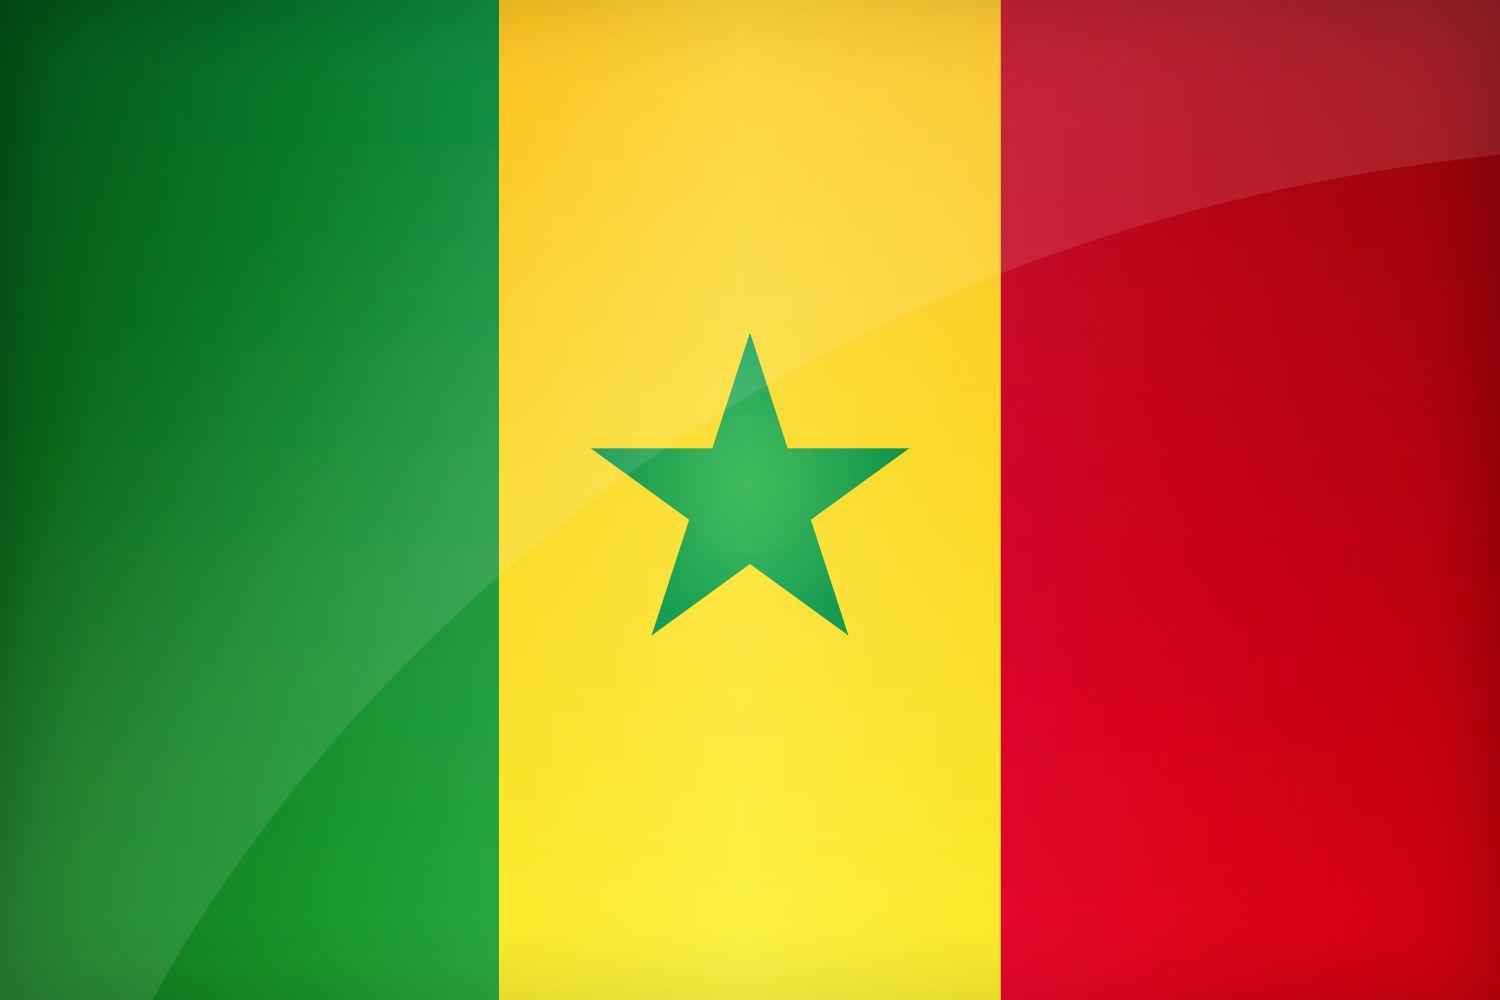 Flag of Senegal | Find the best design for Senegalese Flag